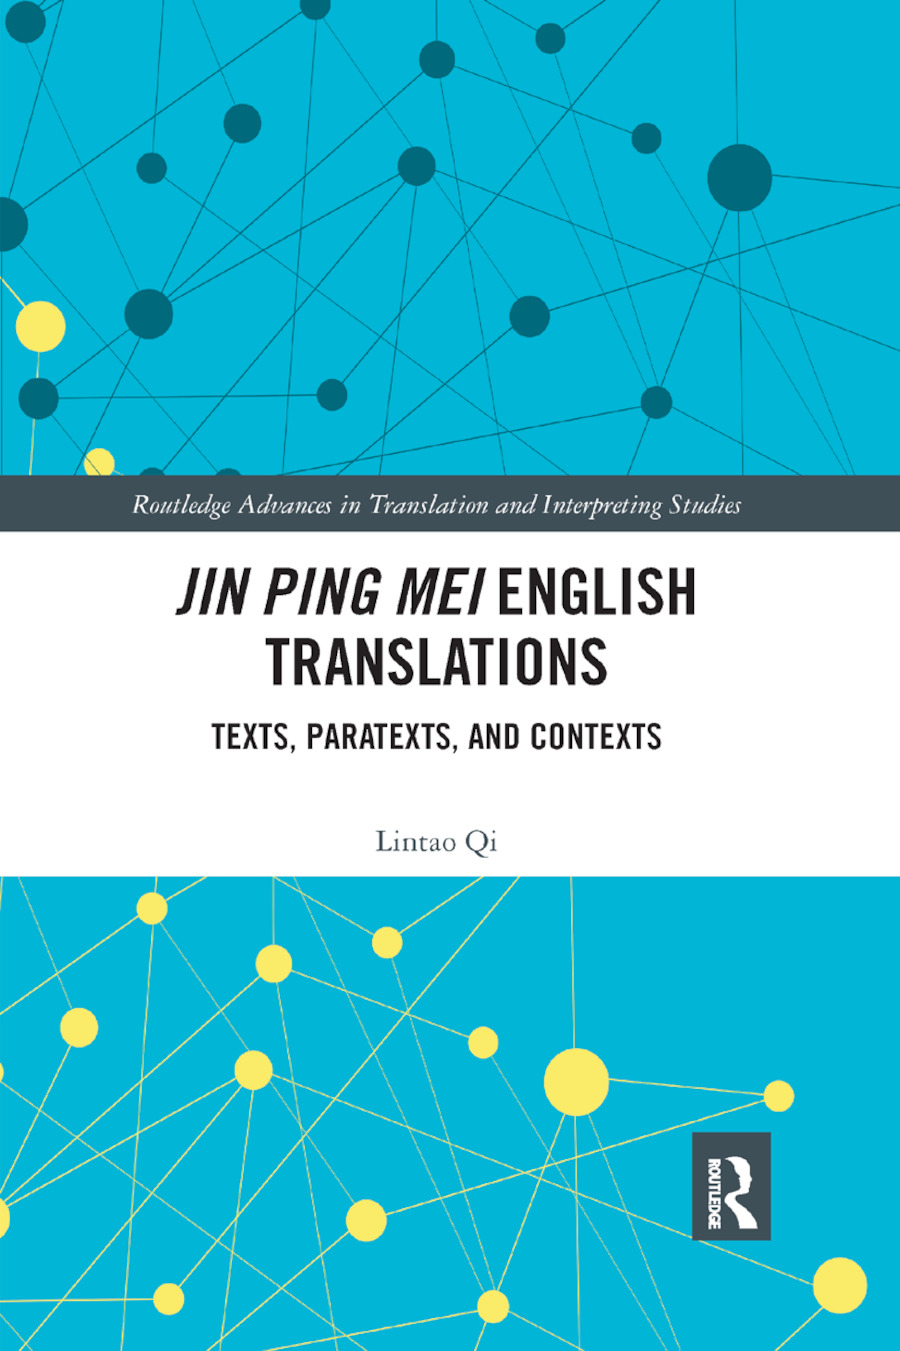 Jin Ping Mei English Translations: Texts, Paratexts and Contexts book cover